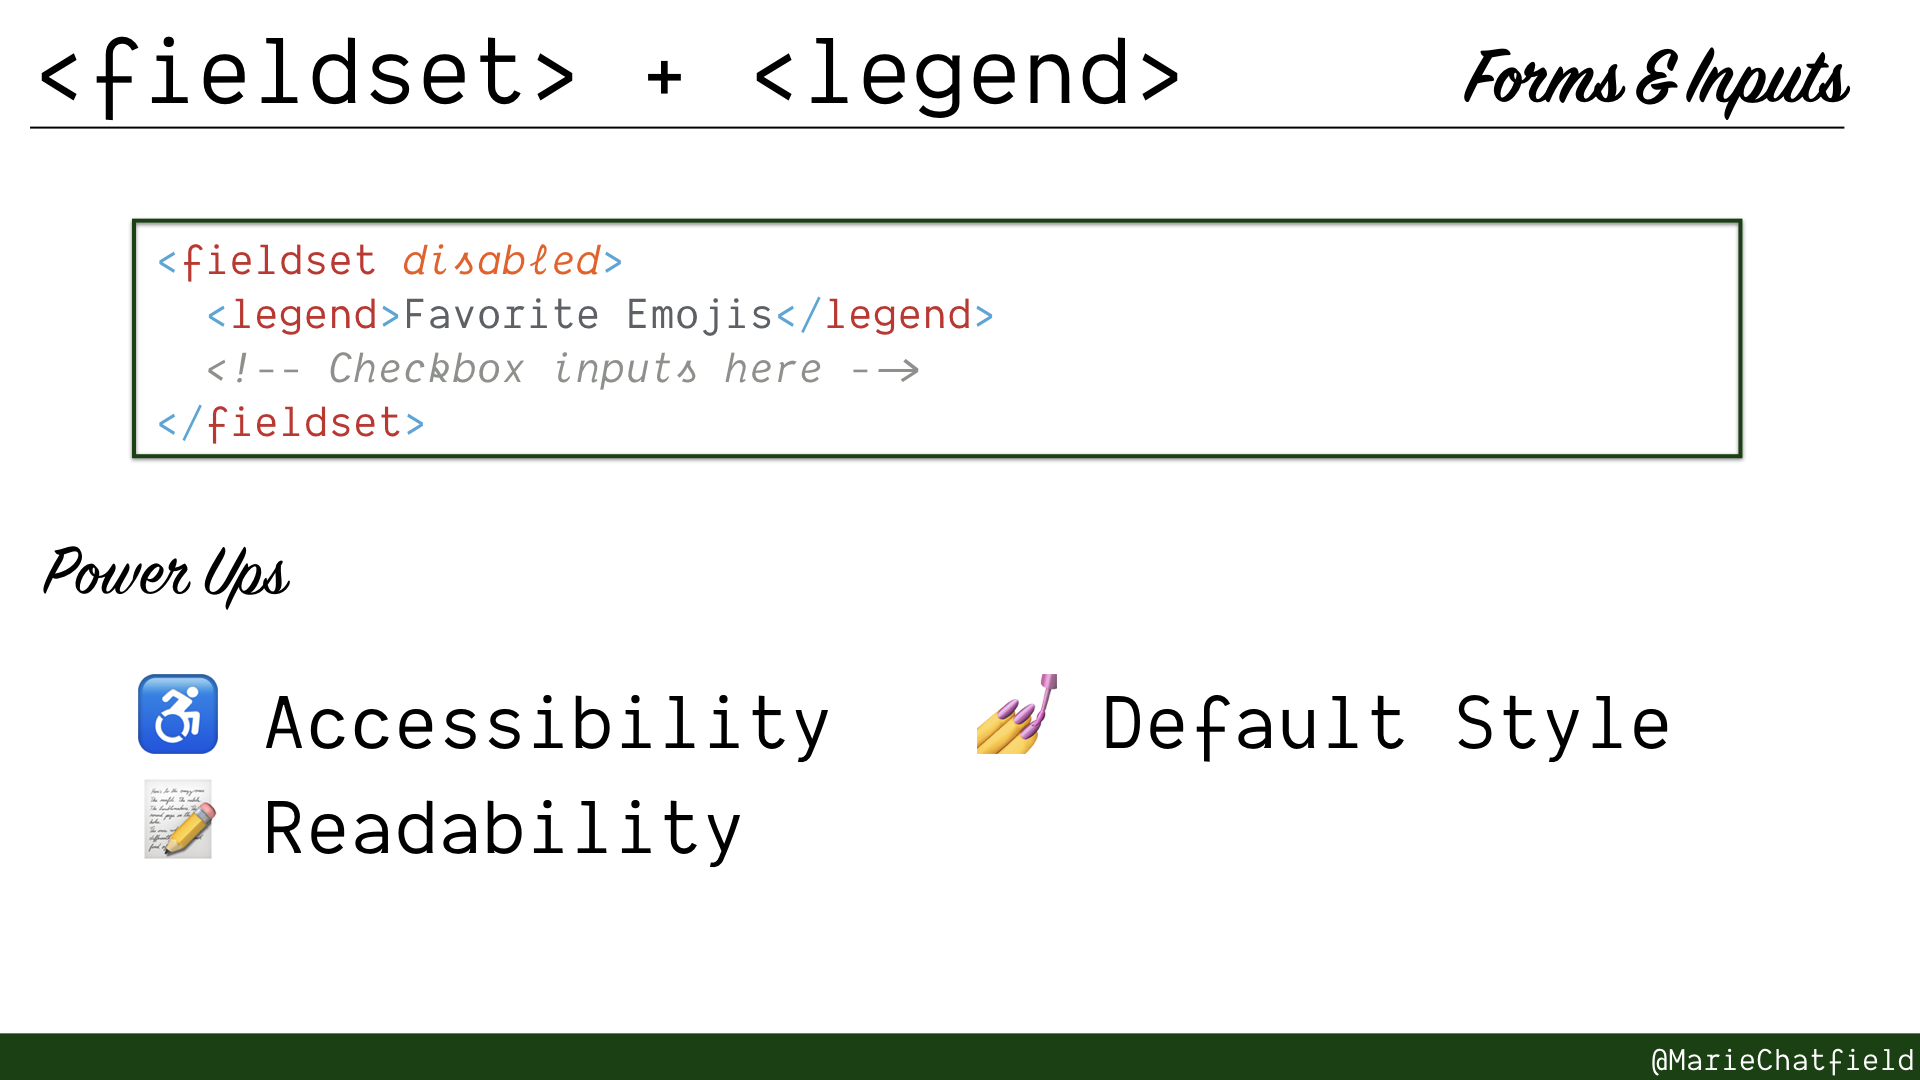 Slide of fieldset and legend elements